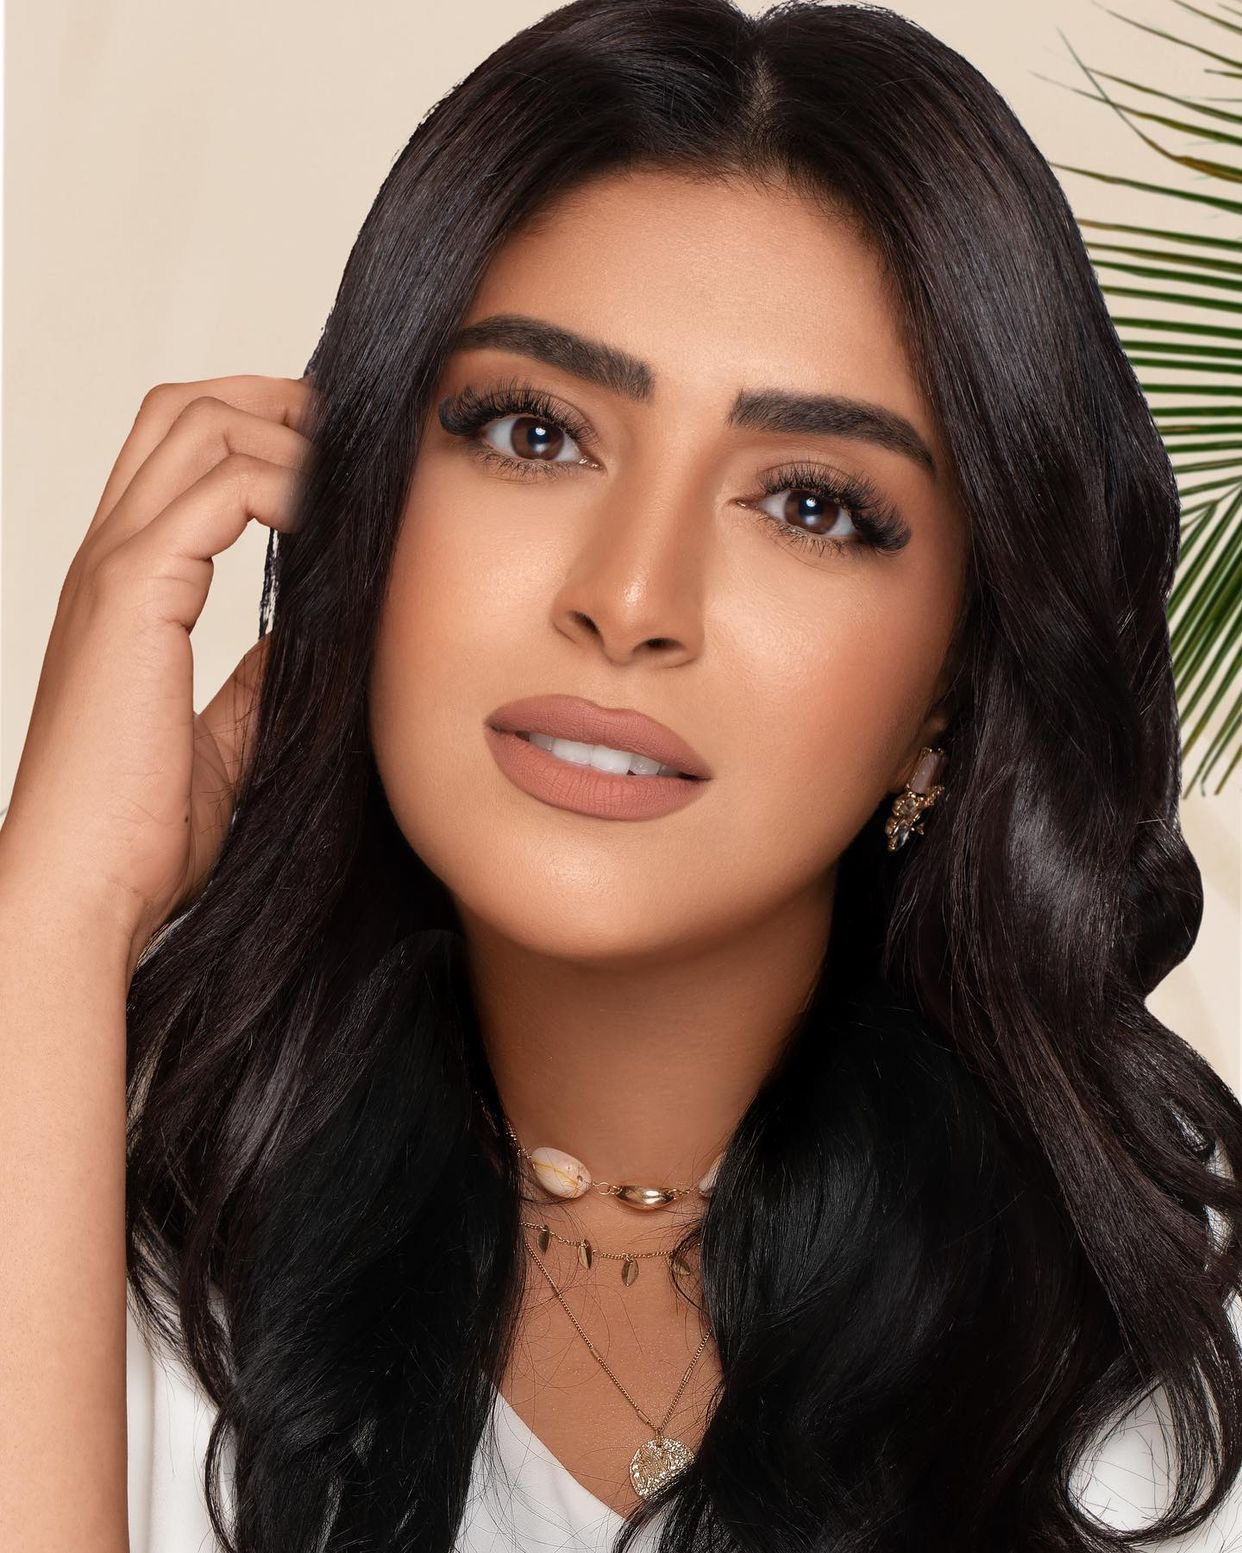 Yomna Ibrahim To Launch A New Website For The Makeup By Yomna Ibrahim Brand